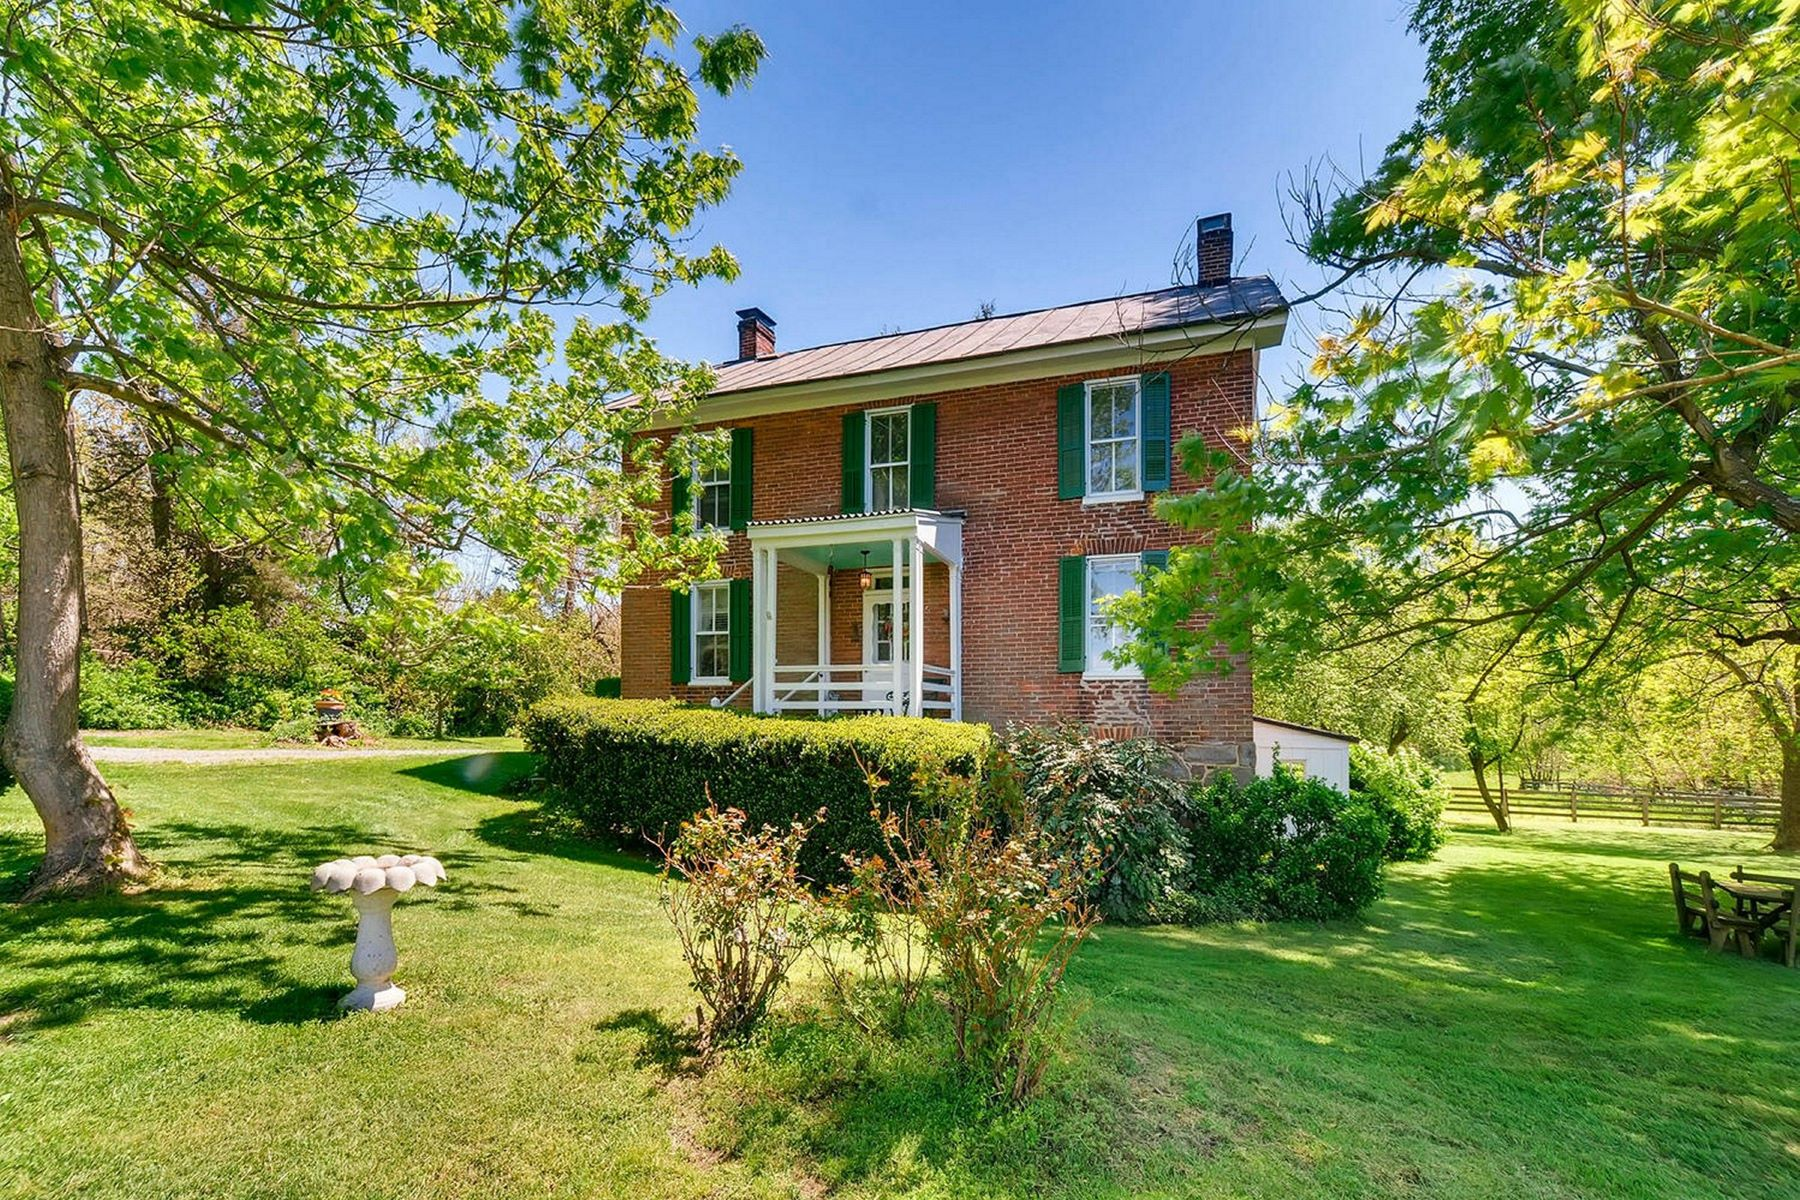 Villa per Vendita alle ore 2601 Old Taneytown Road Westminster, Maryland 21158 Stati Uniti